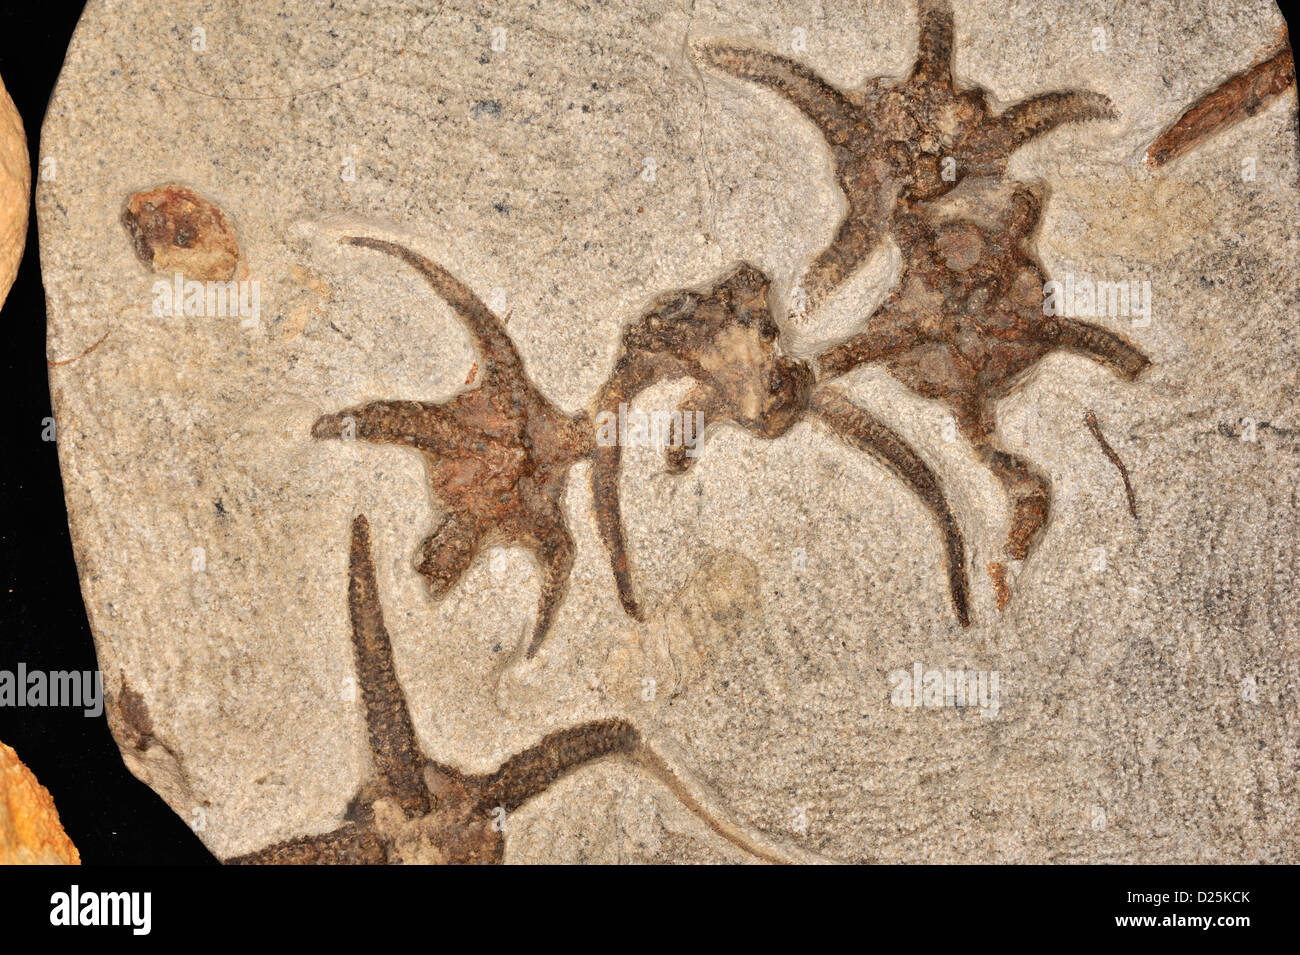 Fossil Brittle Sea Star, Ophiuroides sp., Ordovician Period - Stock Image